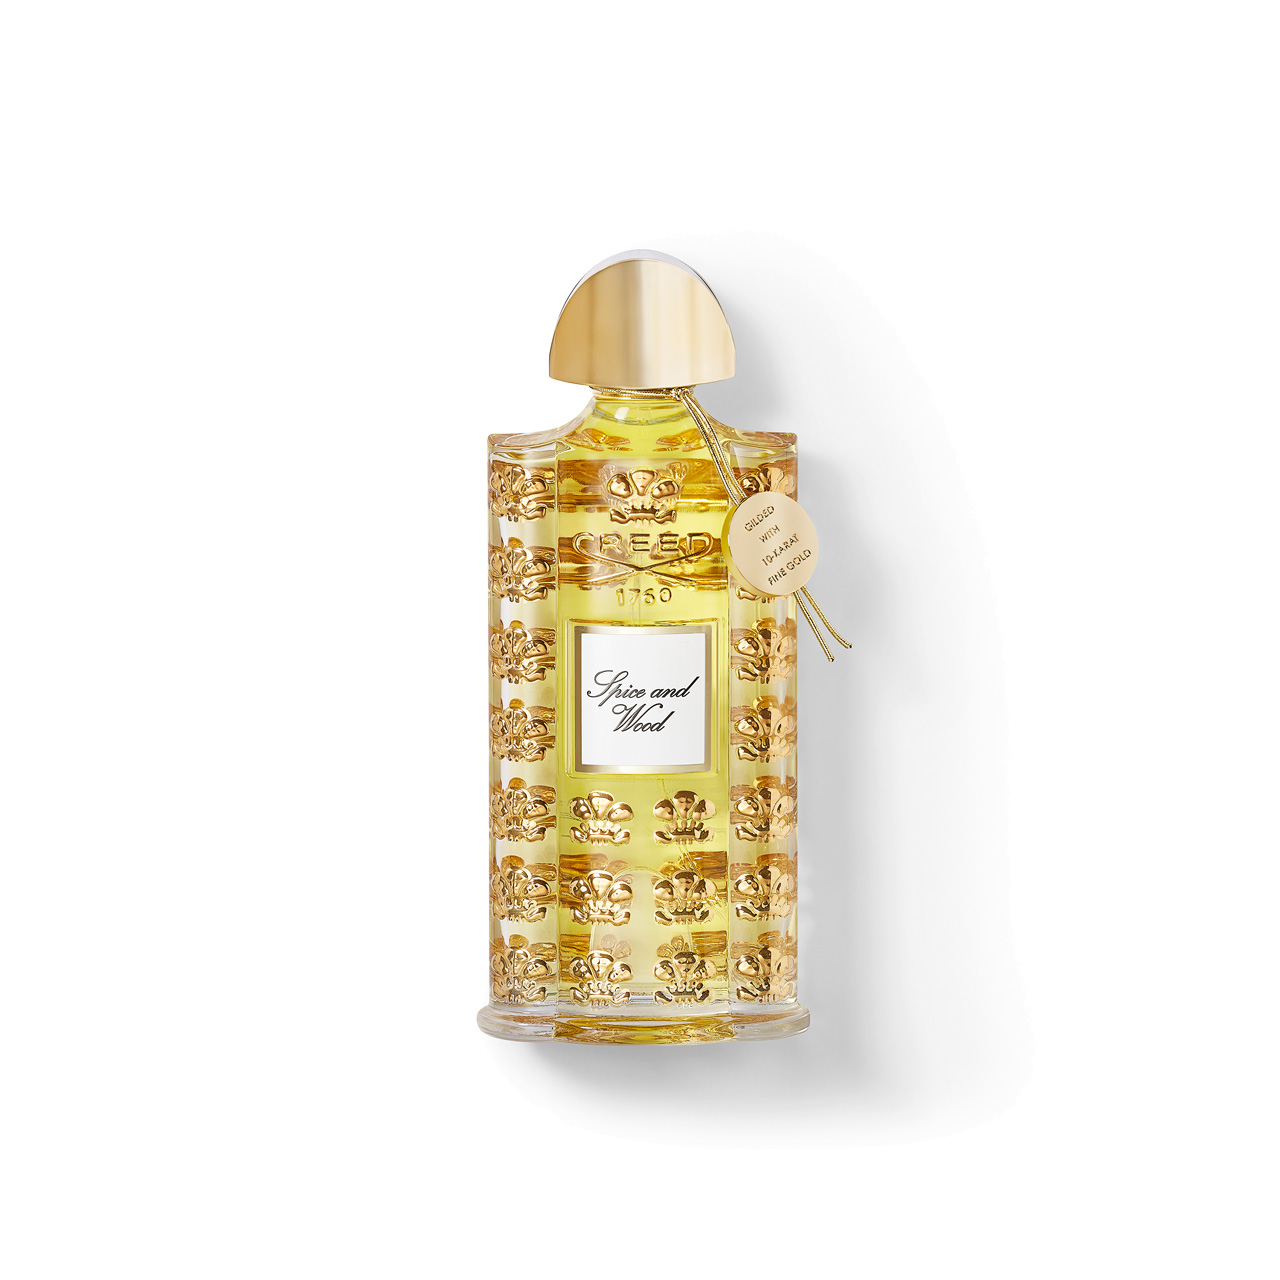 Spice and Wood - Les Royales Exclusives Millesime